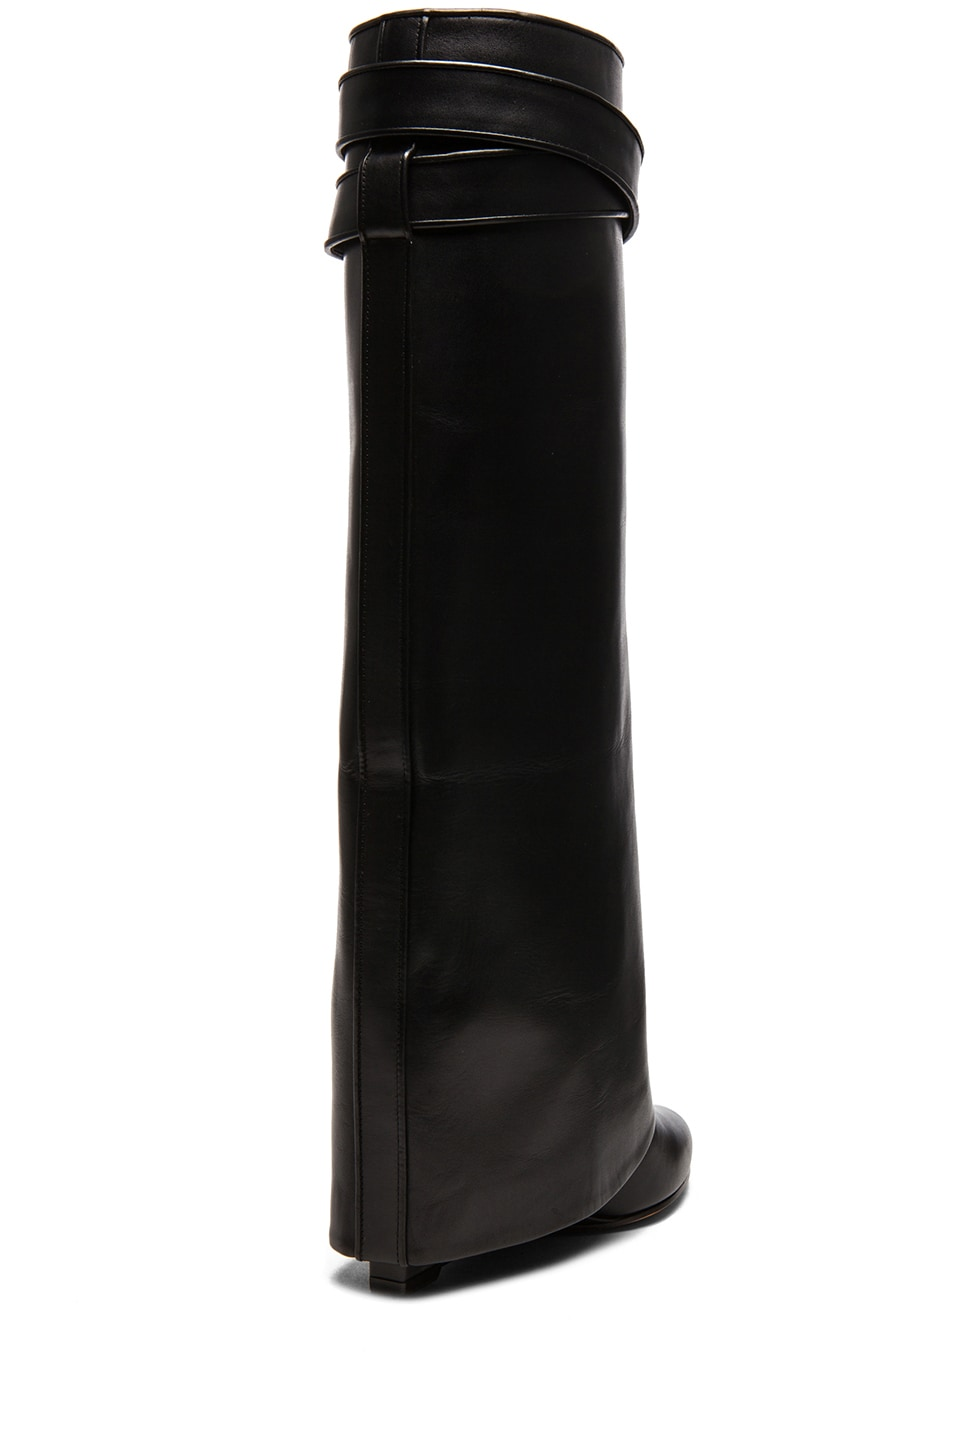 22c452f28c85d Givenchy Shark Lock Tall Leather Pant Boots in Black | FWRD